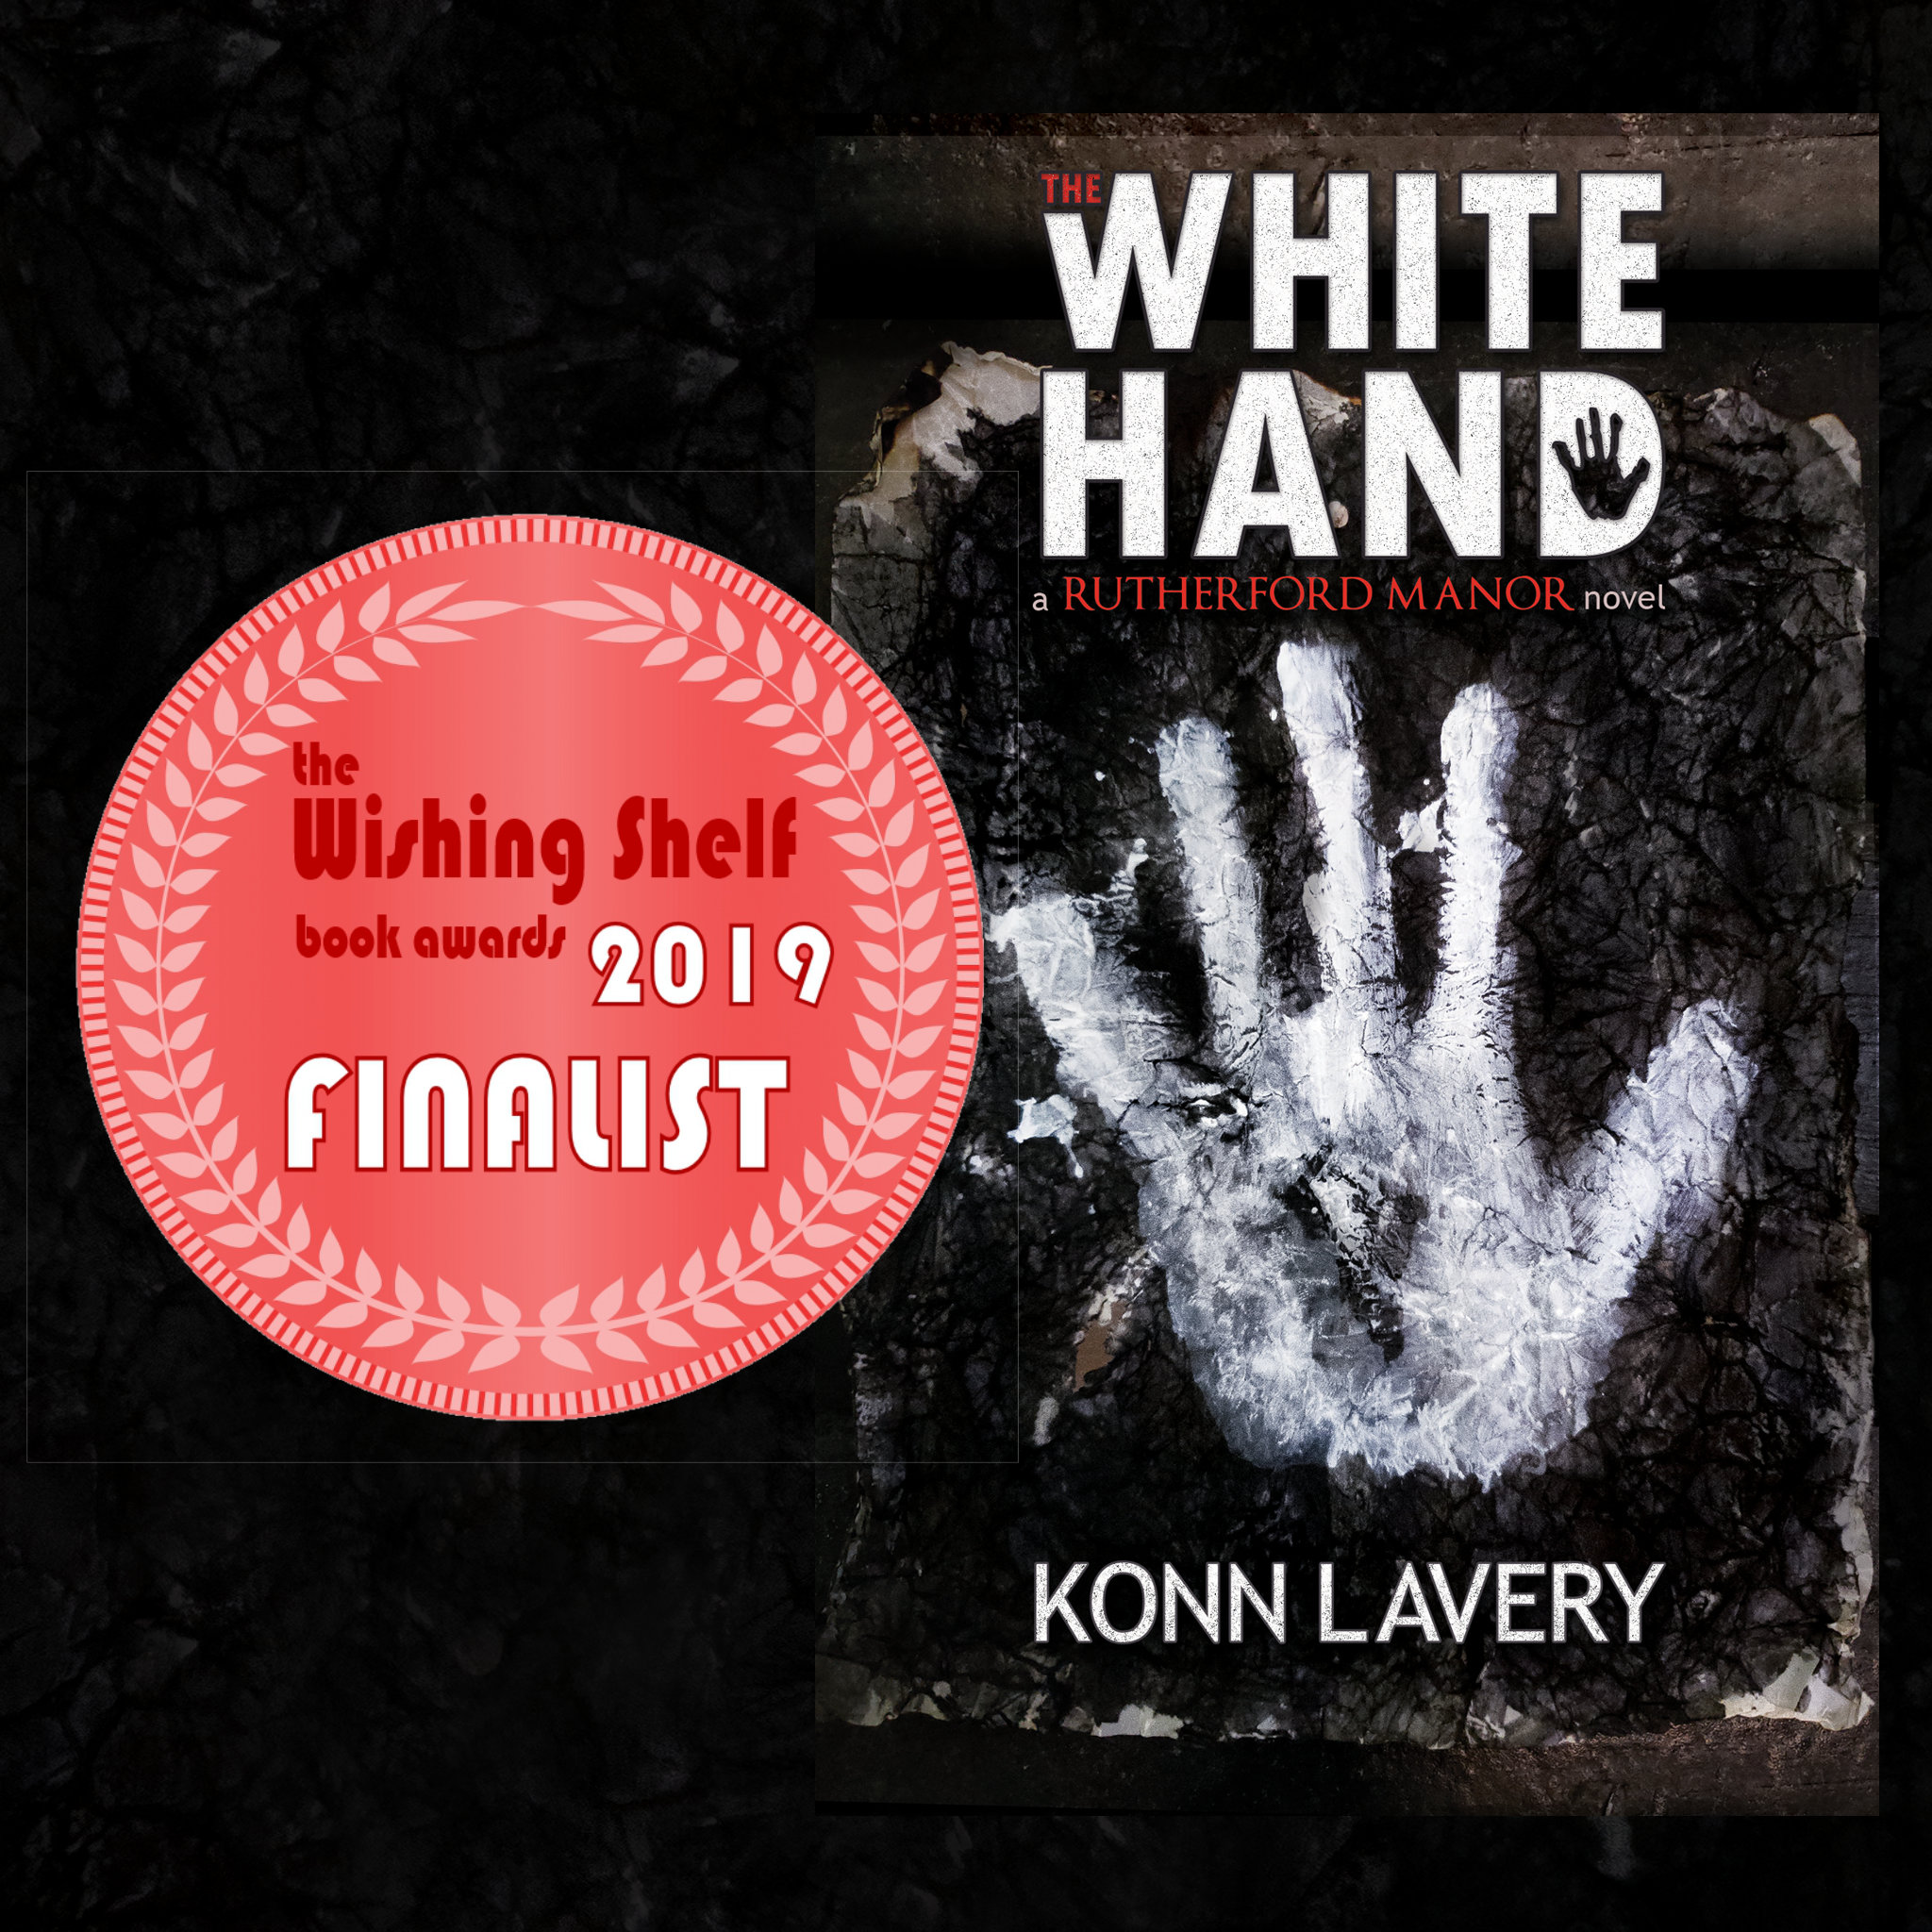 THE WISHING SHELF BOOK AWARDS 2019 FINALISTS/WINNERS - The White Hand by Konn Lavery